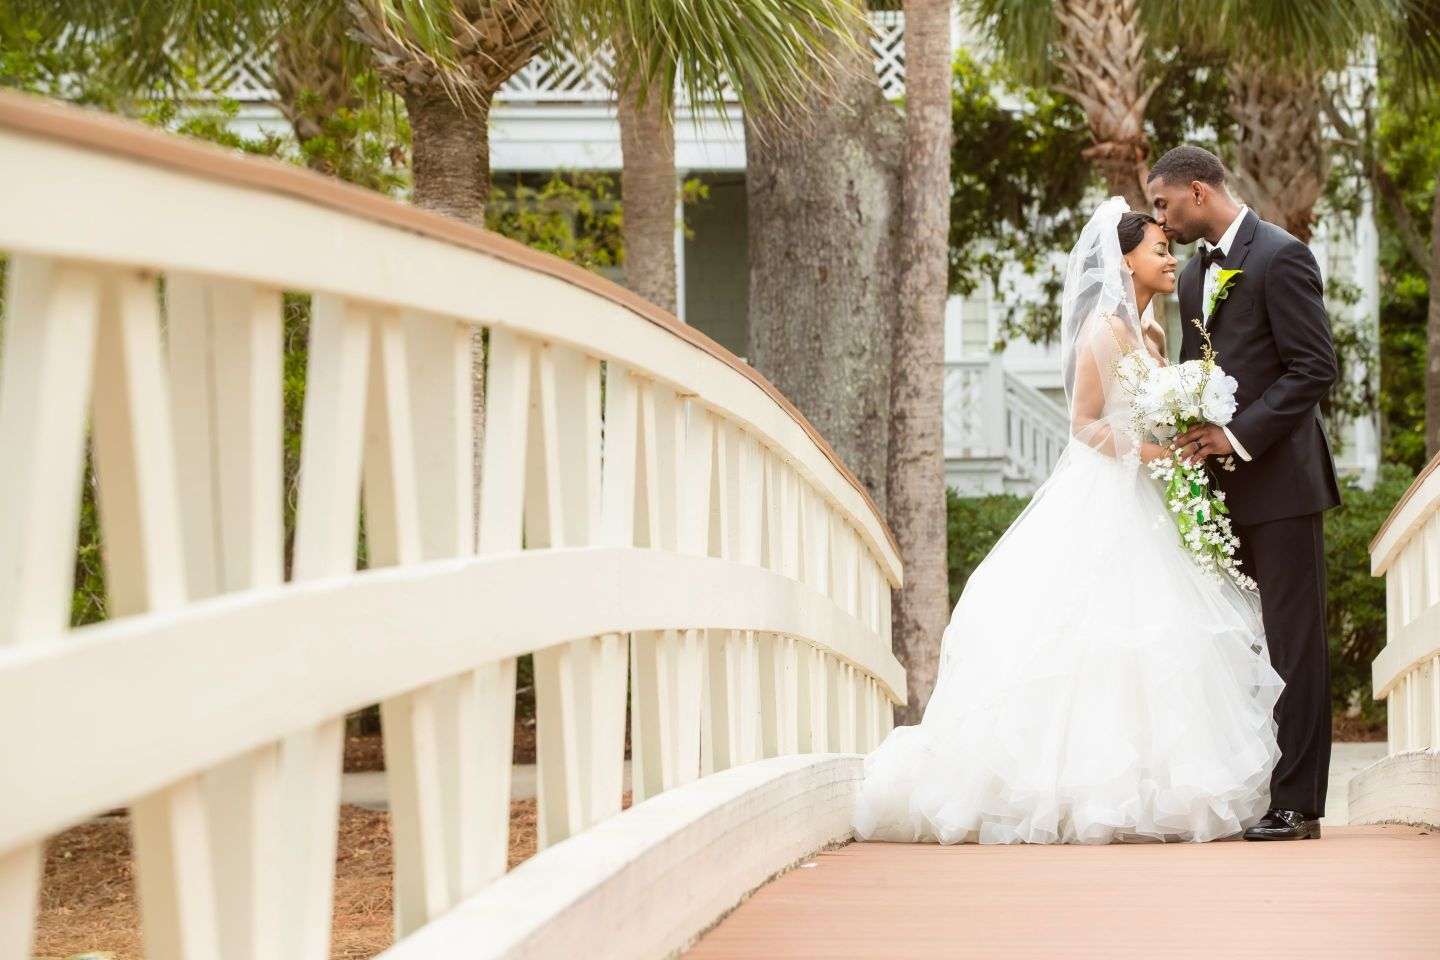 Foster-Wedding-by-Andre-Brown-at-Sonesta-HHI-6-1440x960 Beachfront Wedding Inspiration at the Sonesta Resort Hilton Head Island